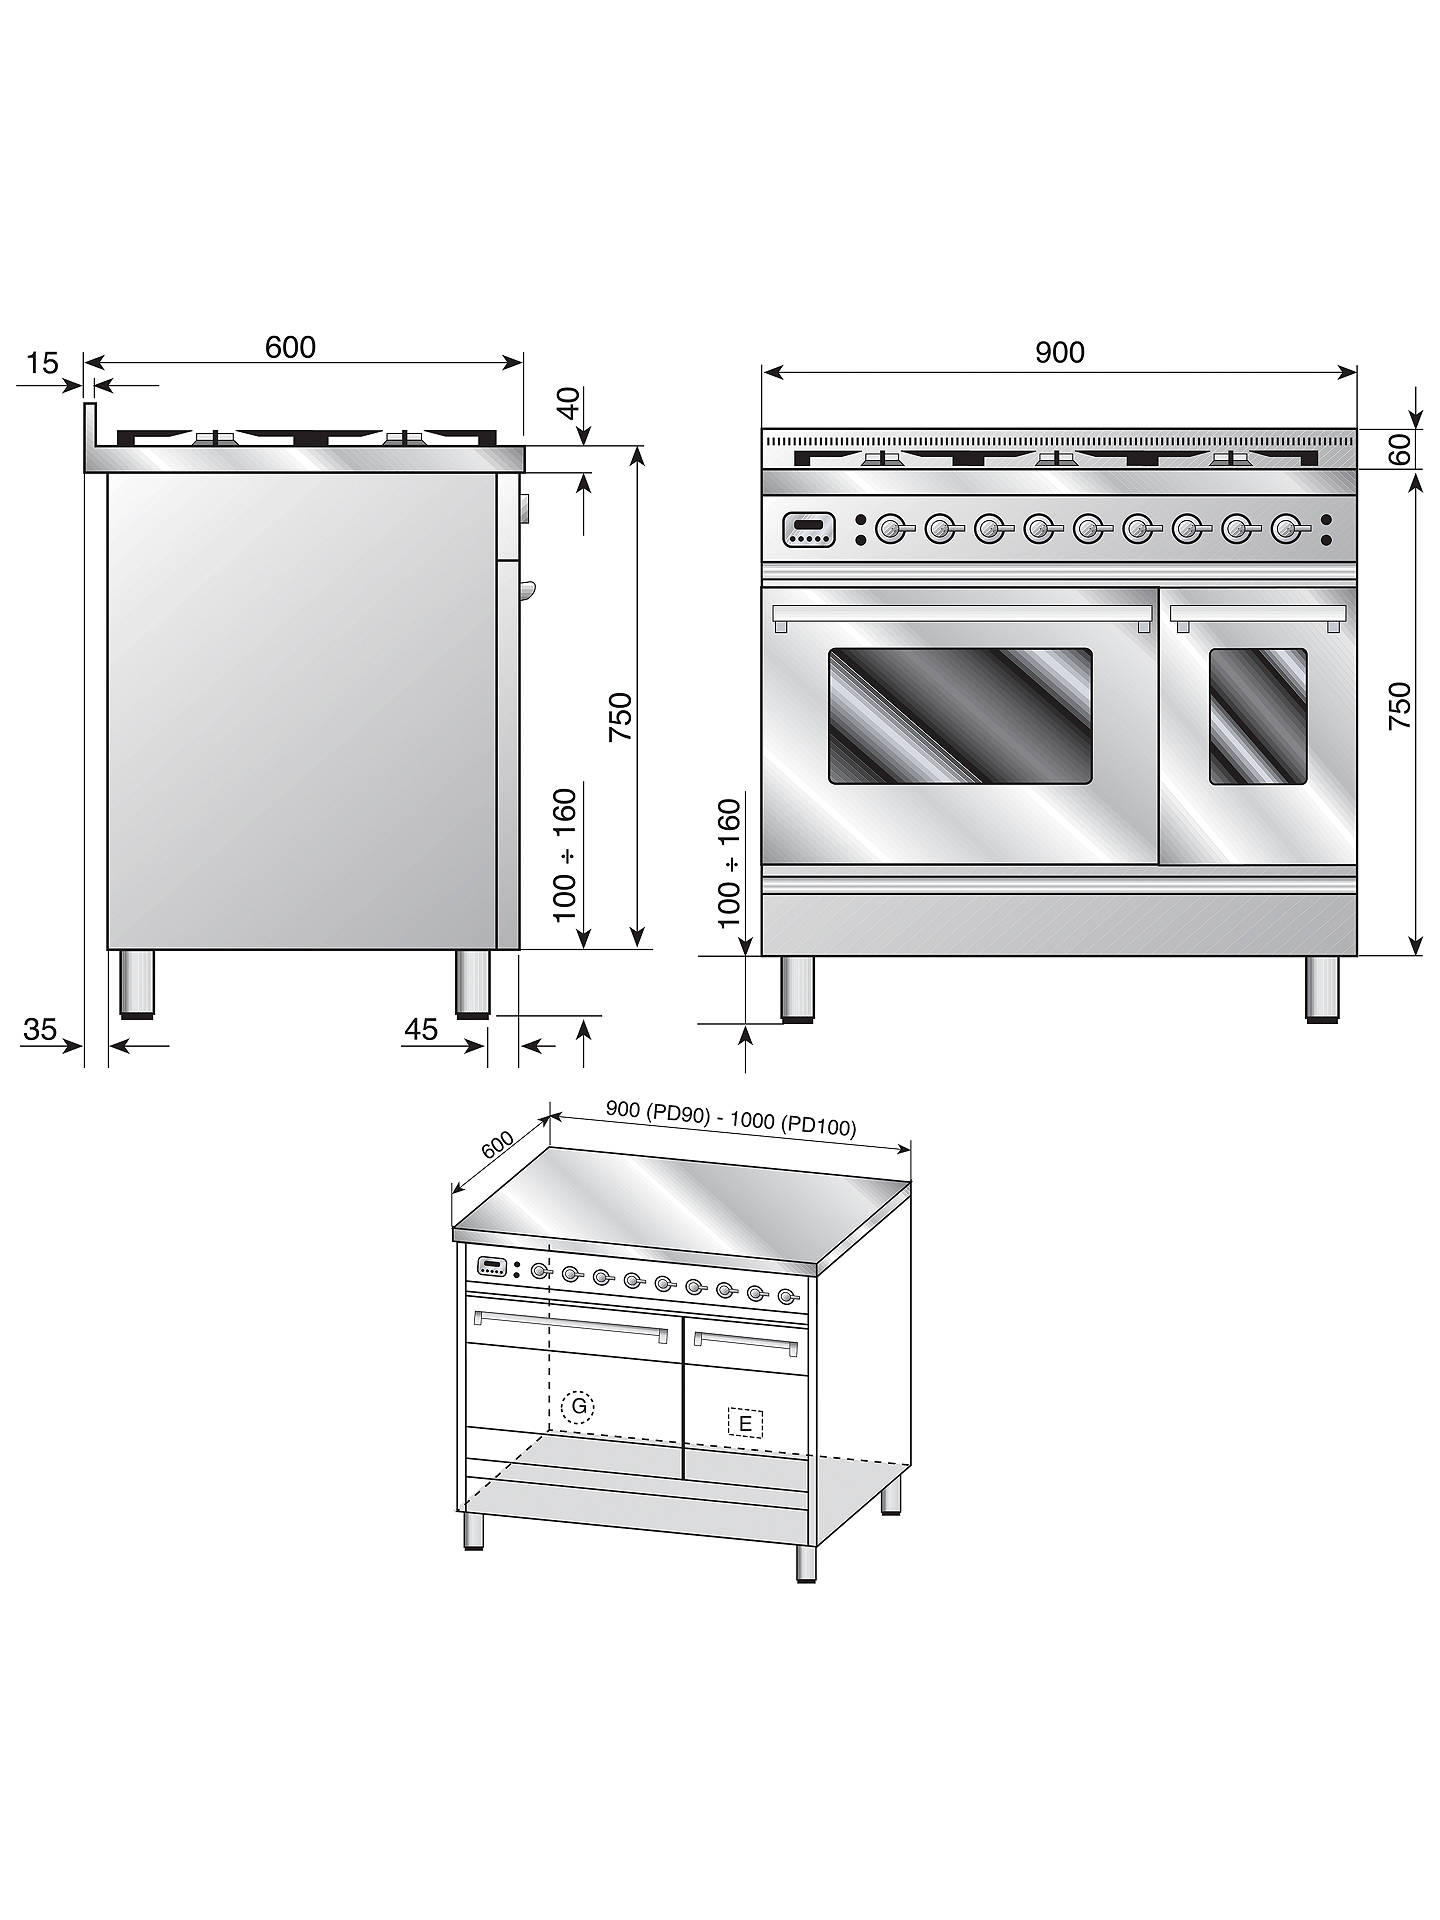 Buy ILVE PDW906E3/A Roma Freestanding Dual Fuel Range Cooker, Cream Online at johnlewis.com